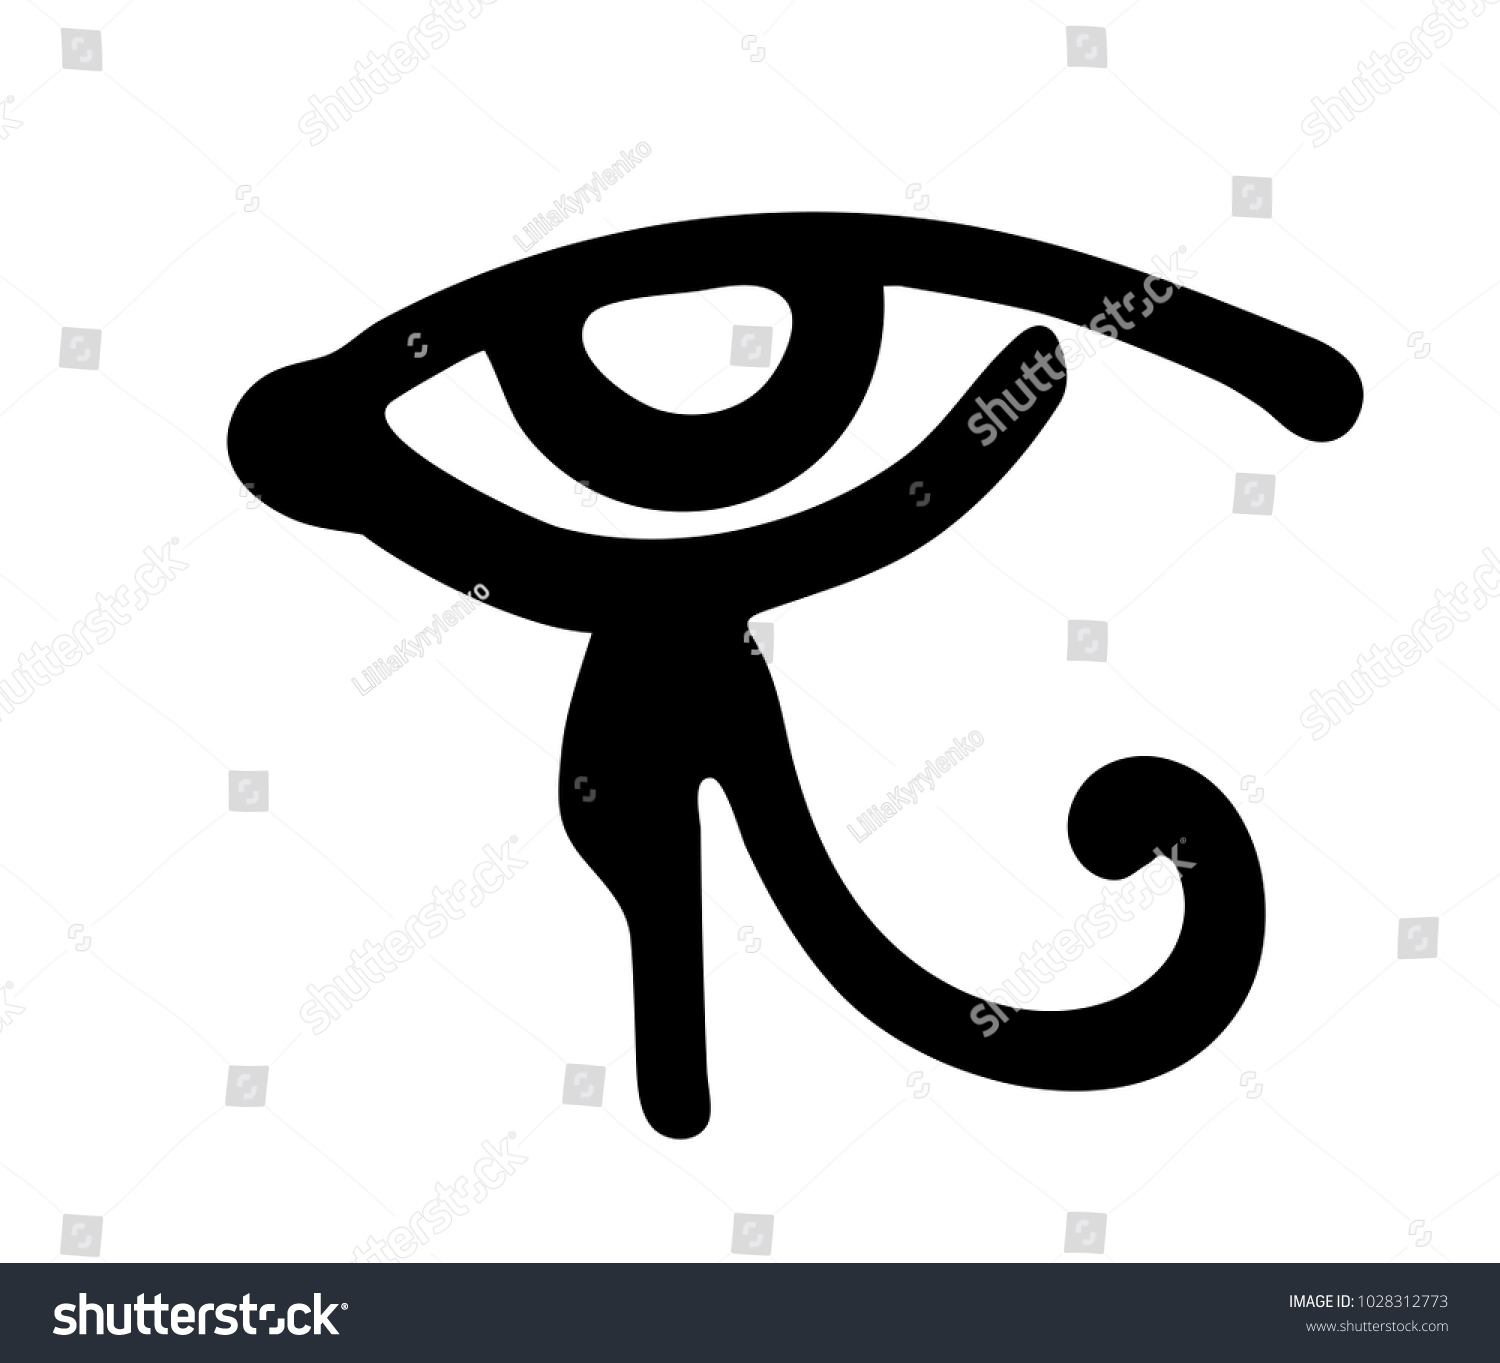 Egyptian immortality symbol images symbol and sign ideas ancient egyptian religious symbols image collections symbol and egyptian eye horus symbol religion myths stock vector buycottarizona